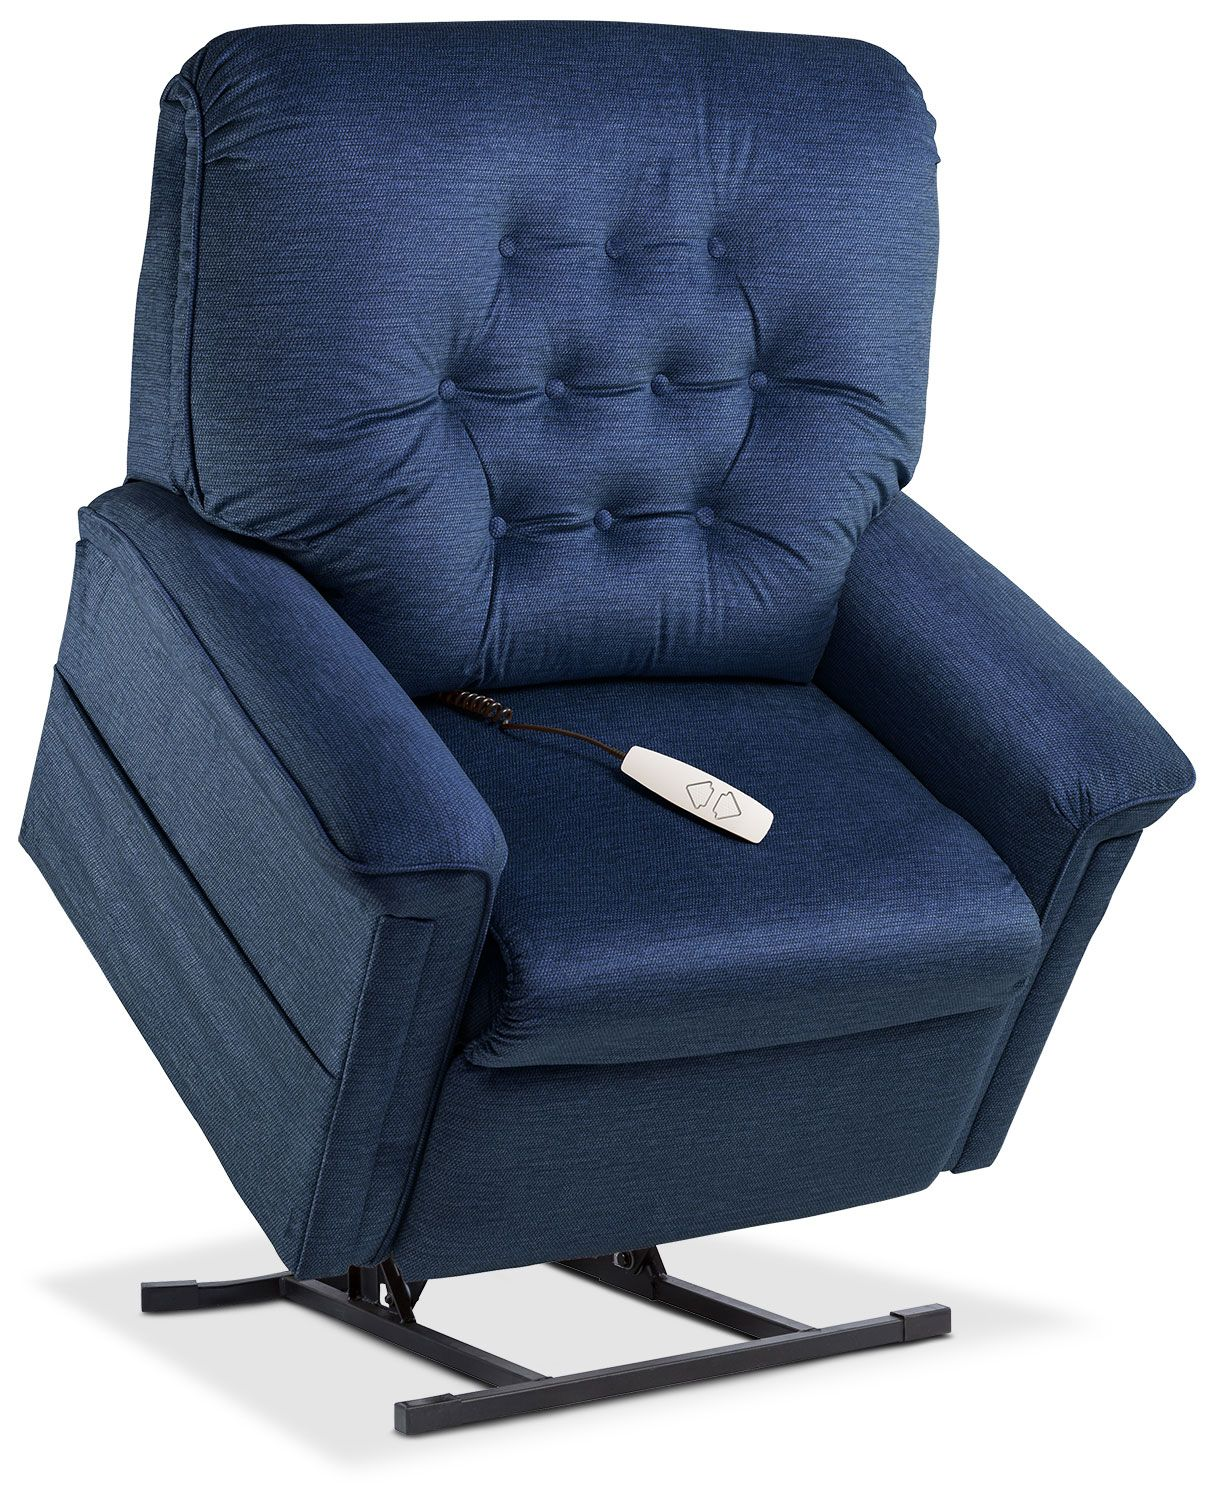 Jose Power Lift Recliner Blue Products Lift Recliners Recliner Value City Furniture